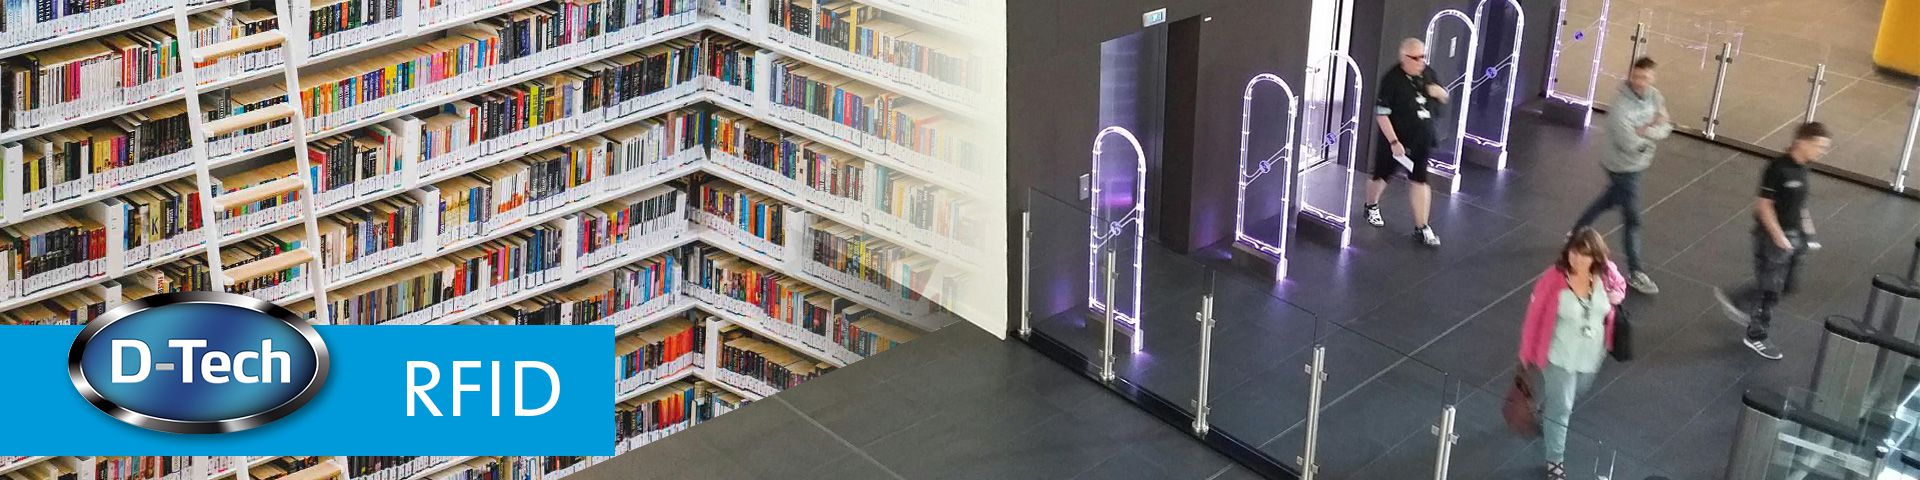 RFID solutions for Library inventory, self-service and security